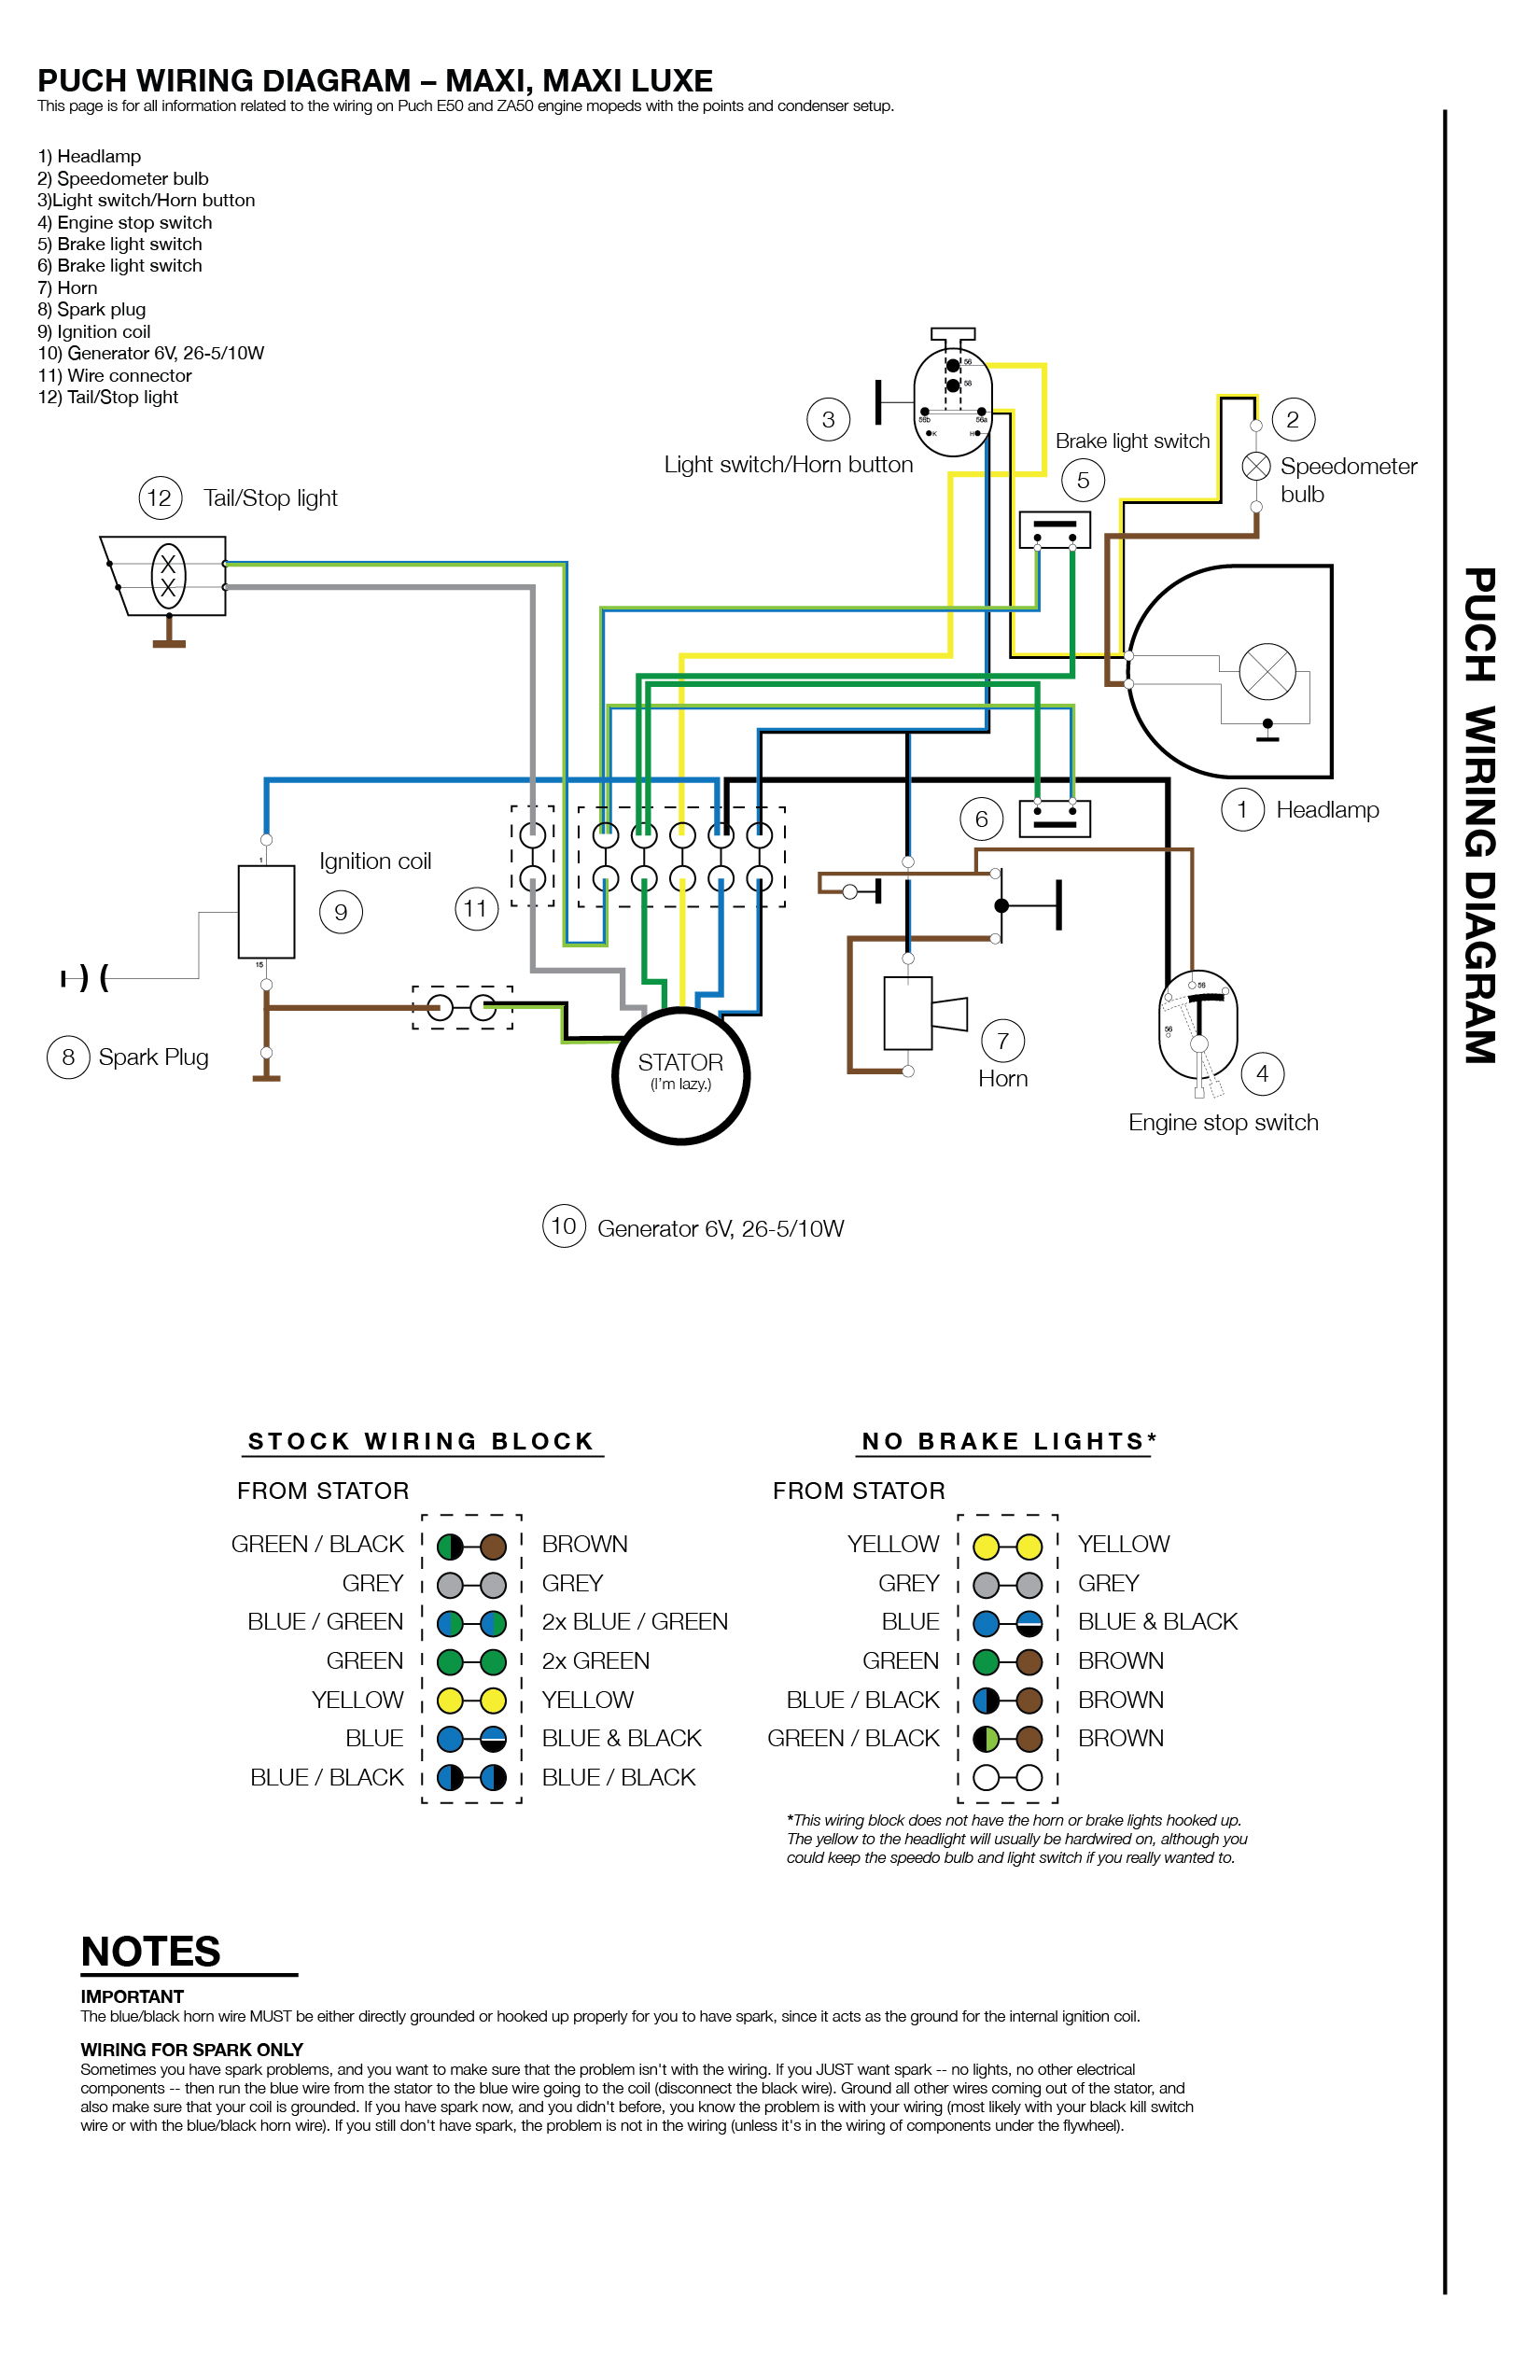 Help Please Wiring The Switch To The Motor Page 3 - Wiring Diagram on reversing motor schematic, 3 wire switch schematic, 3 phase capacitor, starter schematic, transformer schematic, ac motor speed control schematic, 3 phase control schematic, phase converter schematic, rectifier schematic, 3 phase diagram, 3 phase generator schematic,